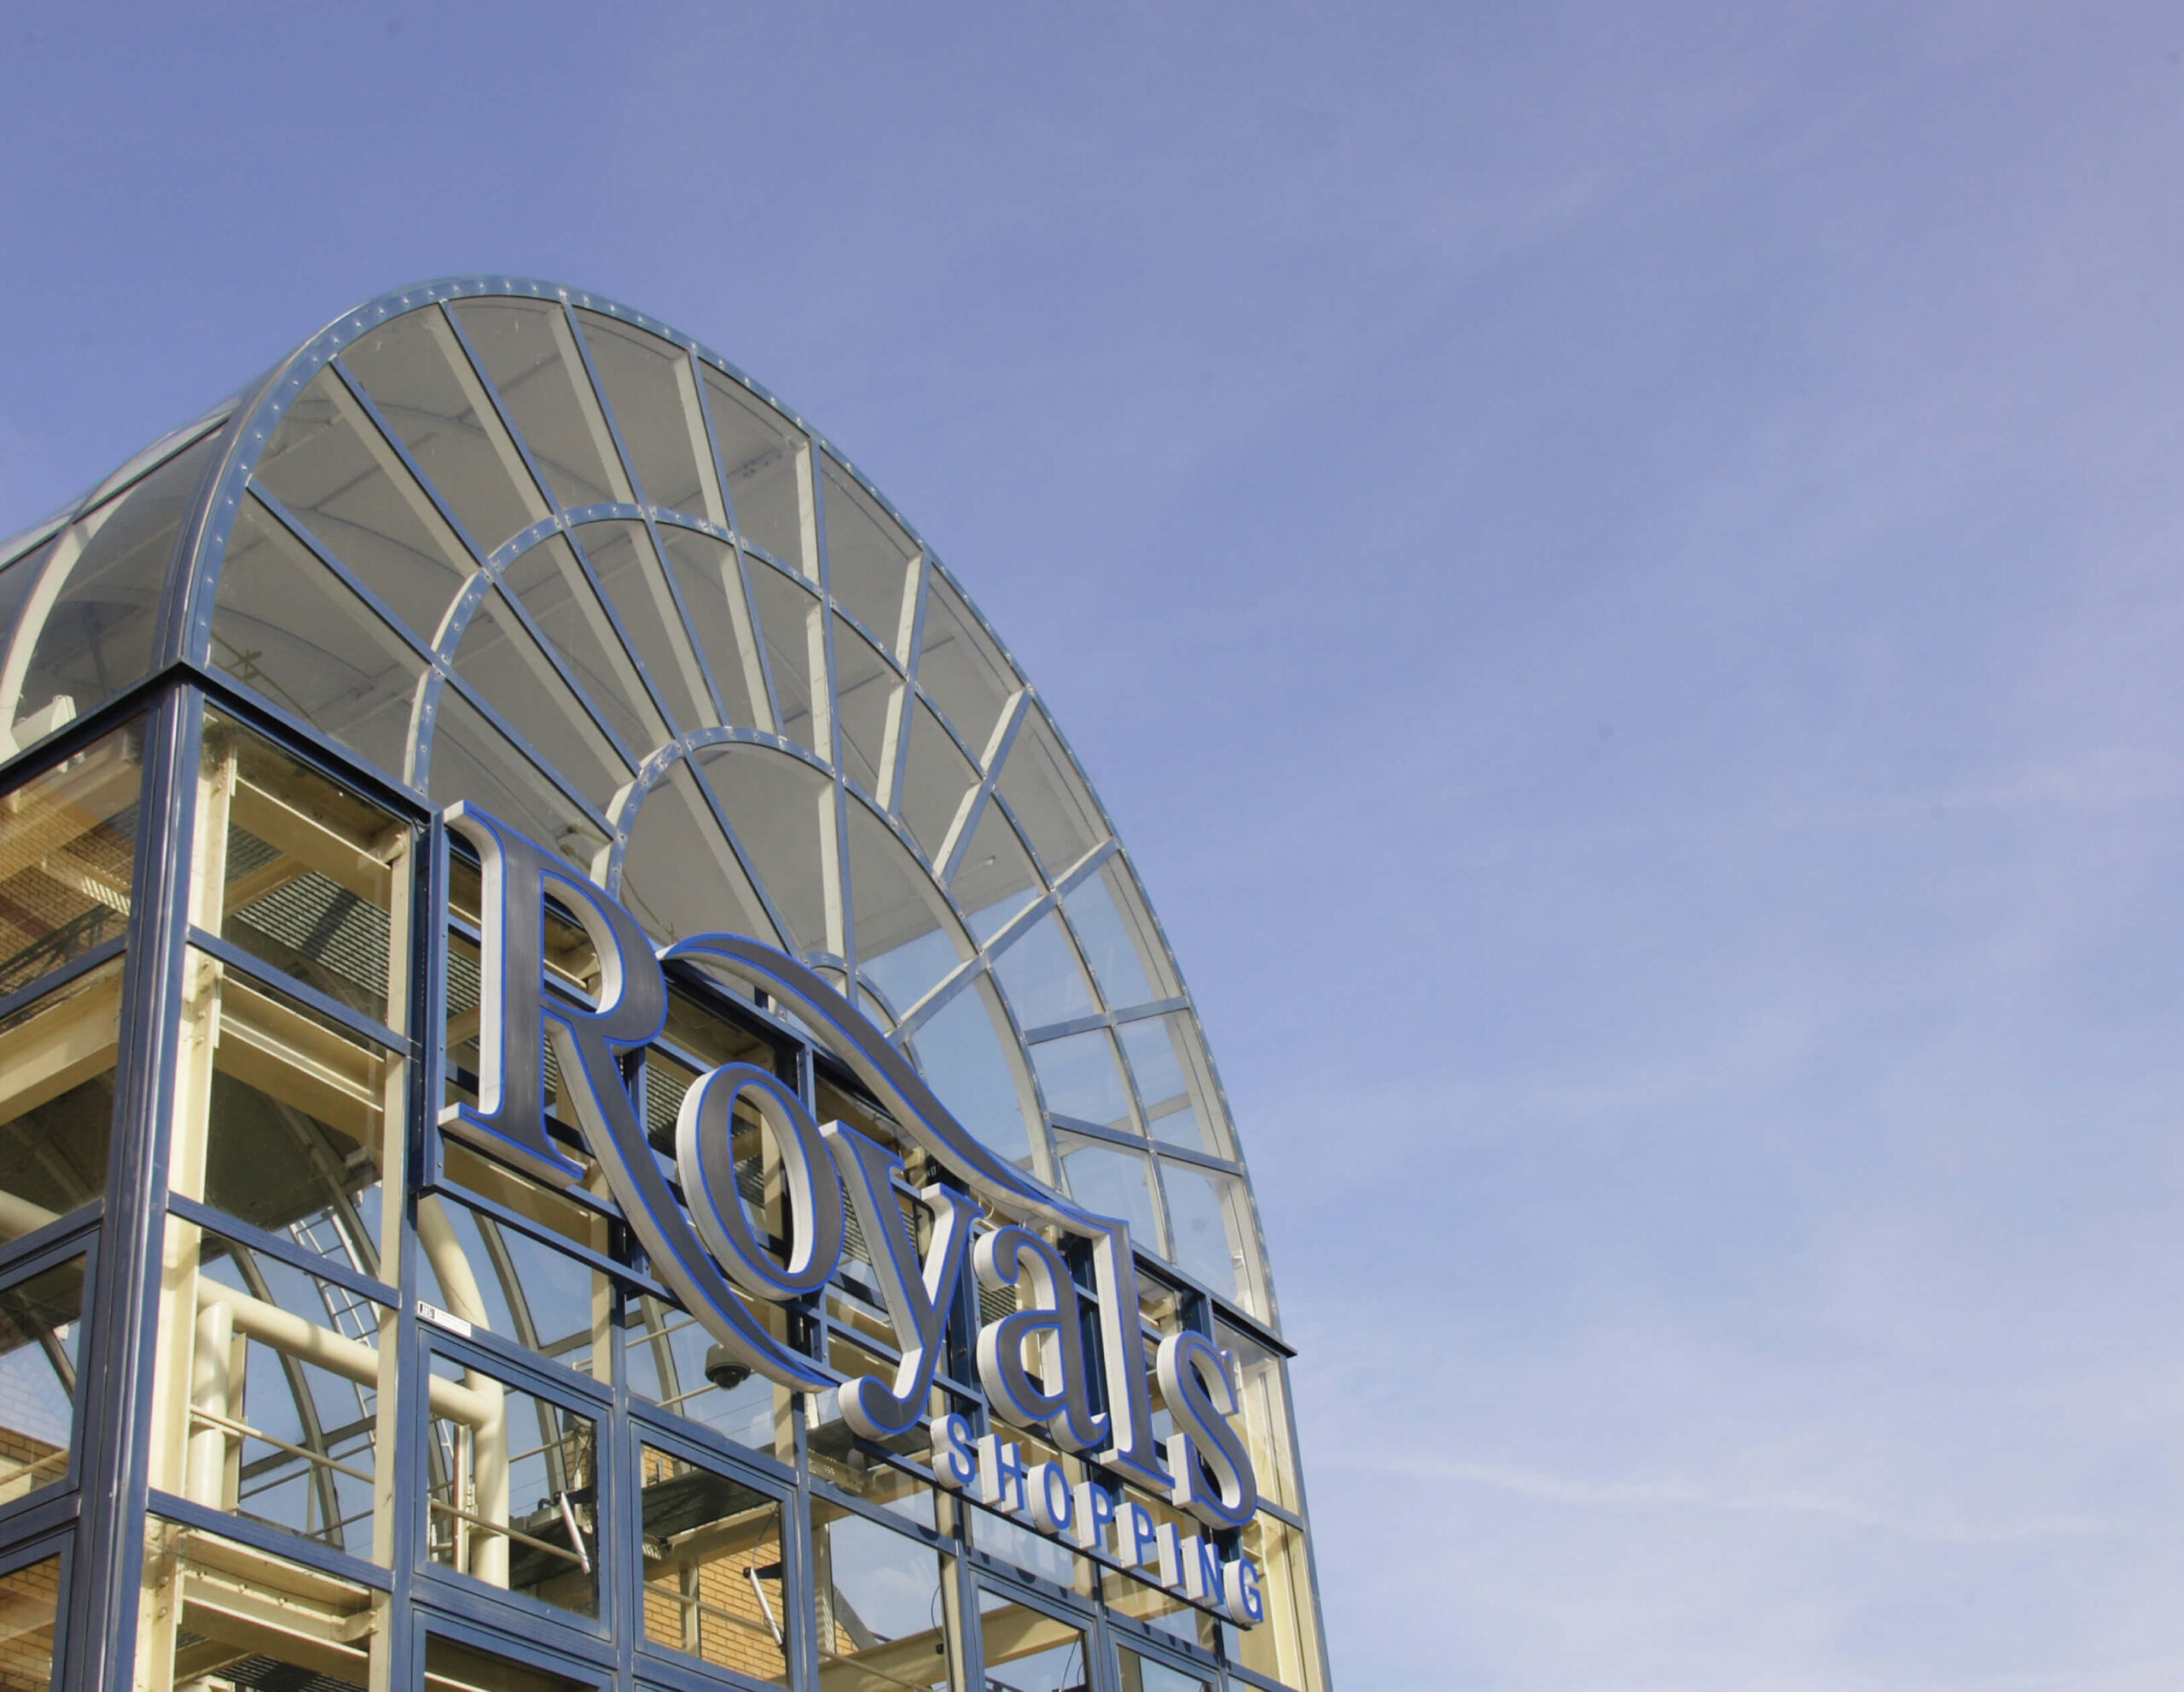 The royals shopping centre southend